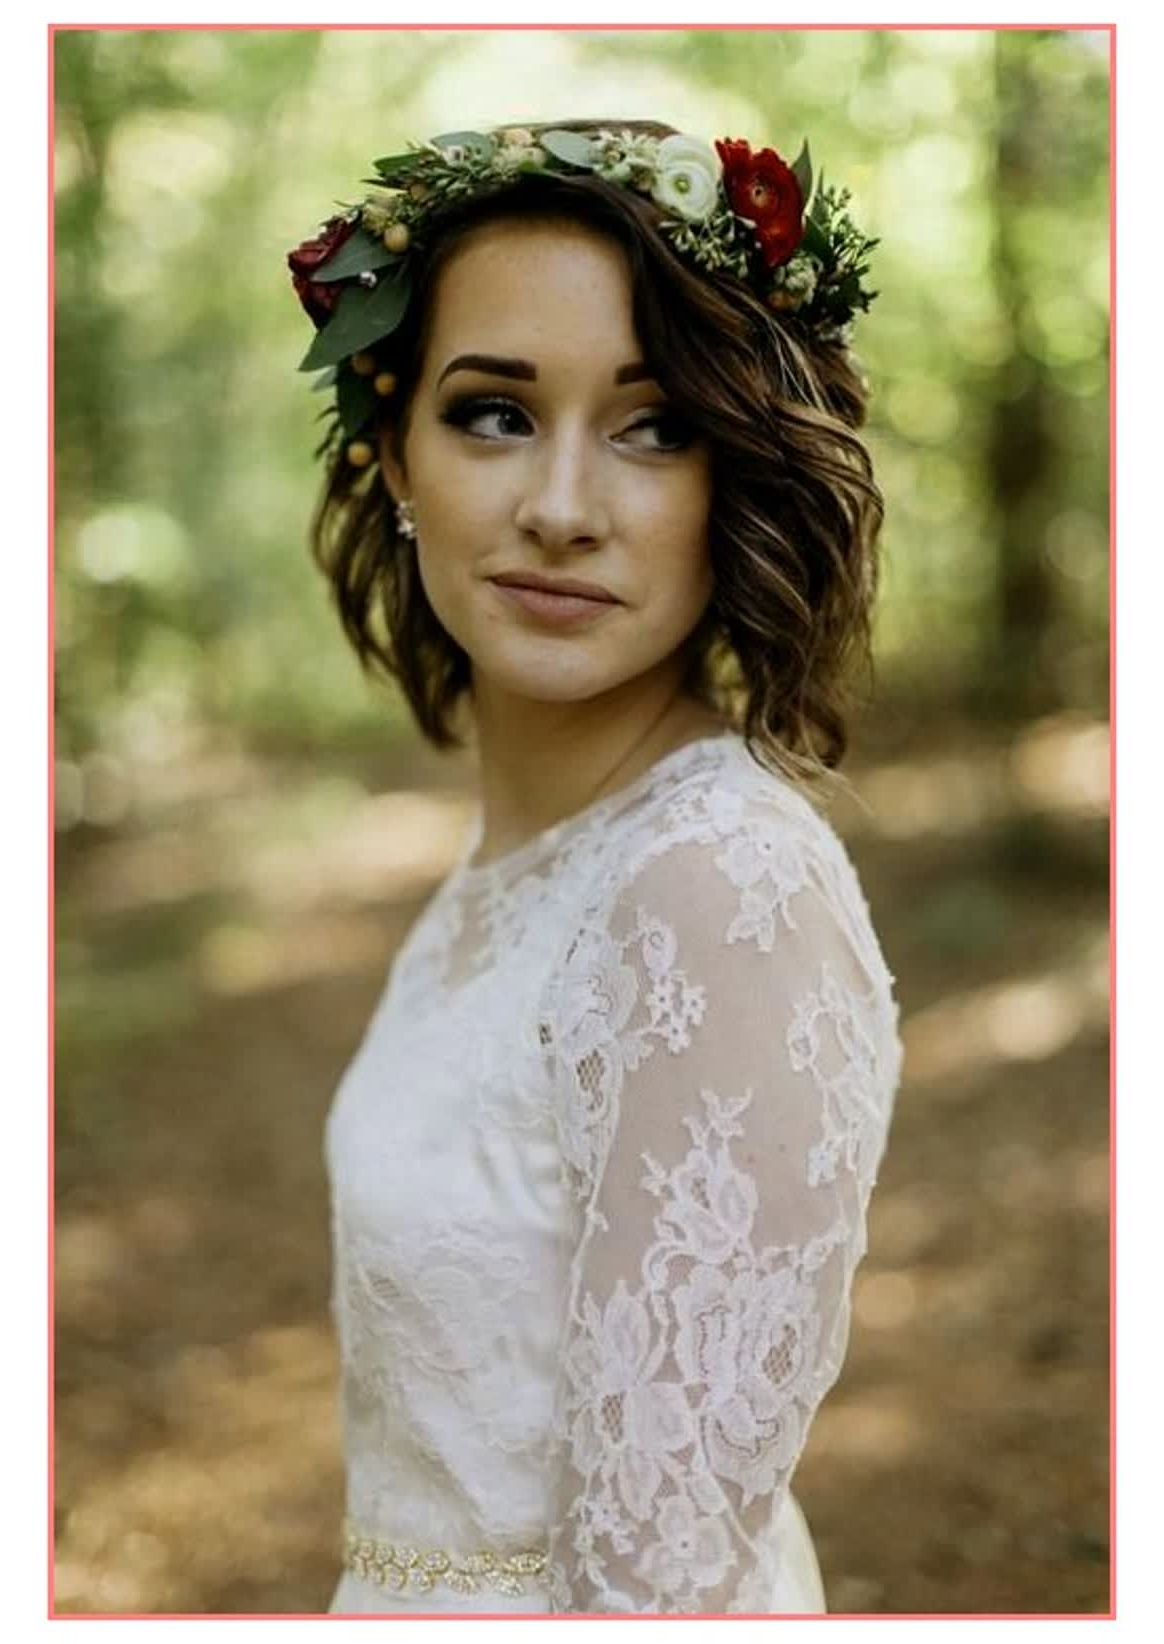 Short Hairstyles Fording Guest Hats Indian Party Hairstyle Join Hair Within Most Recent Wedding Bob Hairstyles For Short Hair (View 10 of 15)